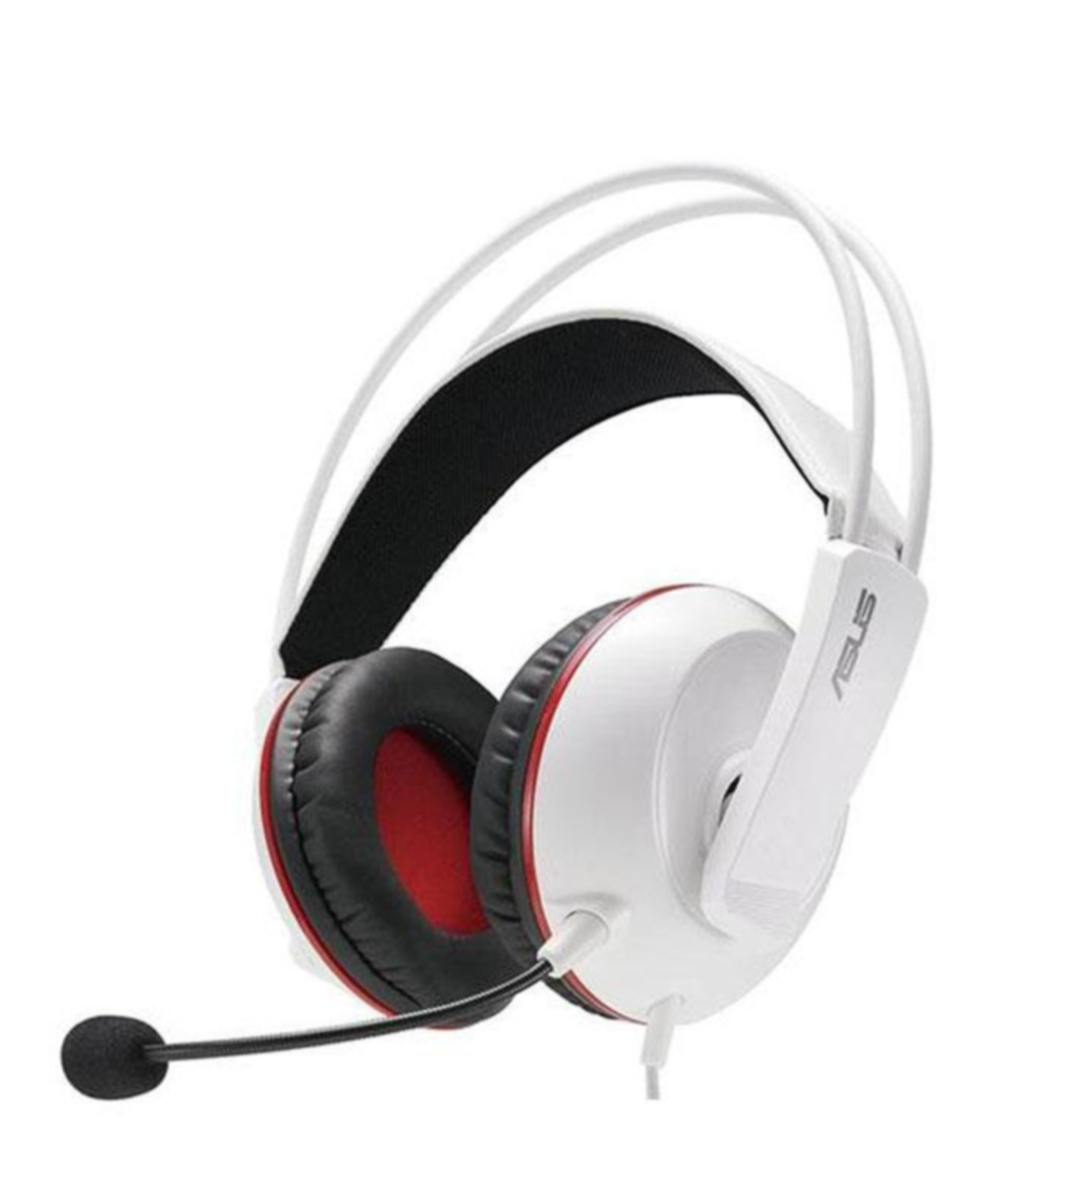 Cerberus Arctic Edition Gaming Headset